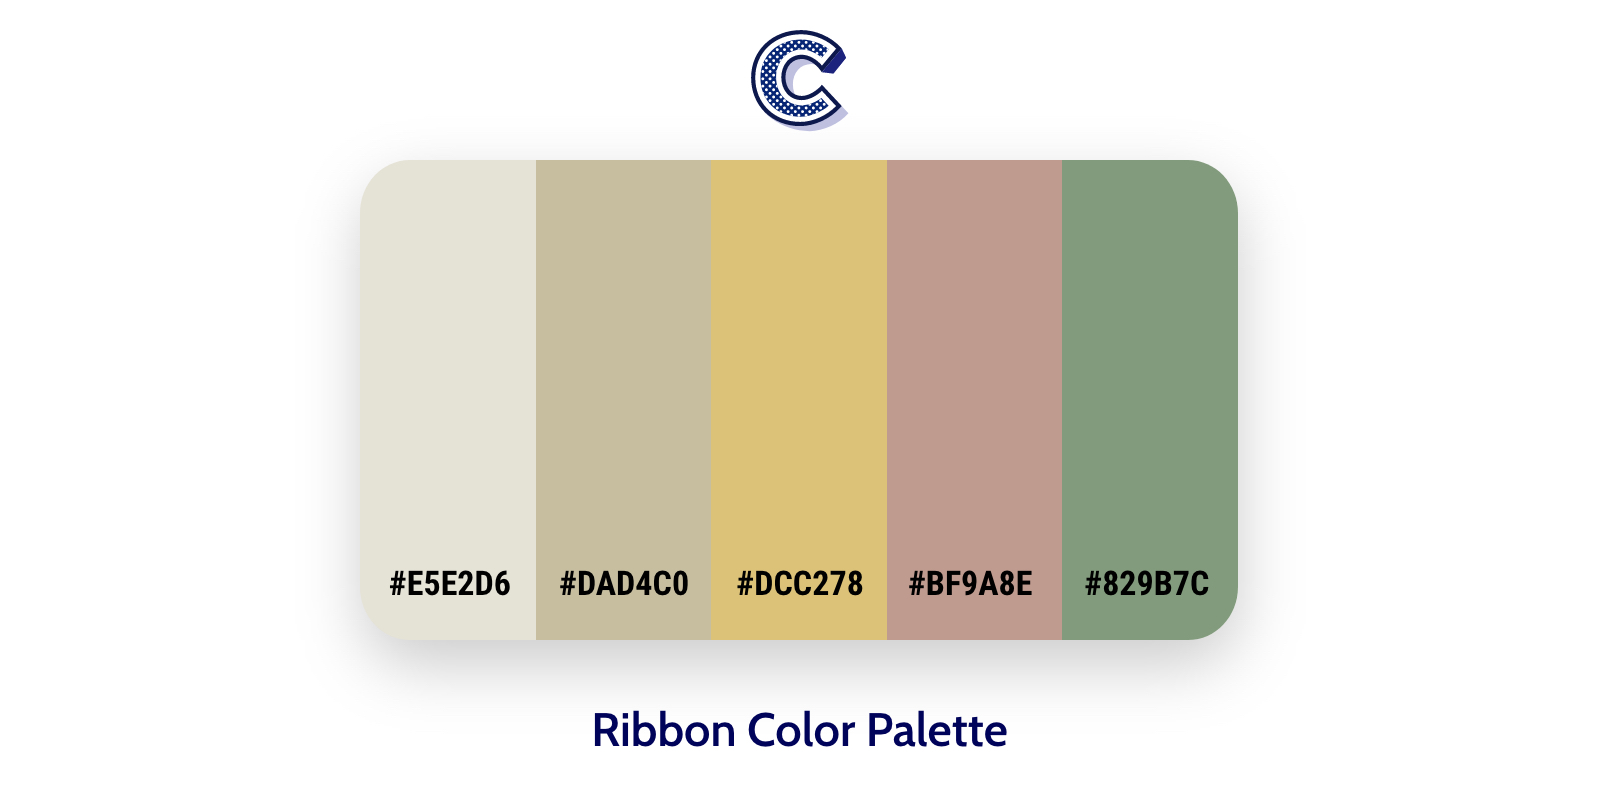 the featured image of ribbon color palette